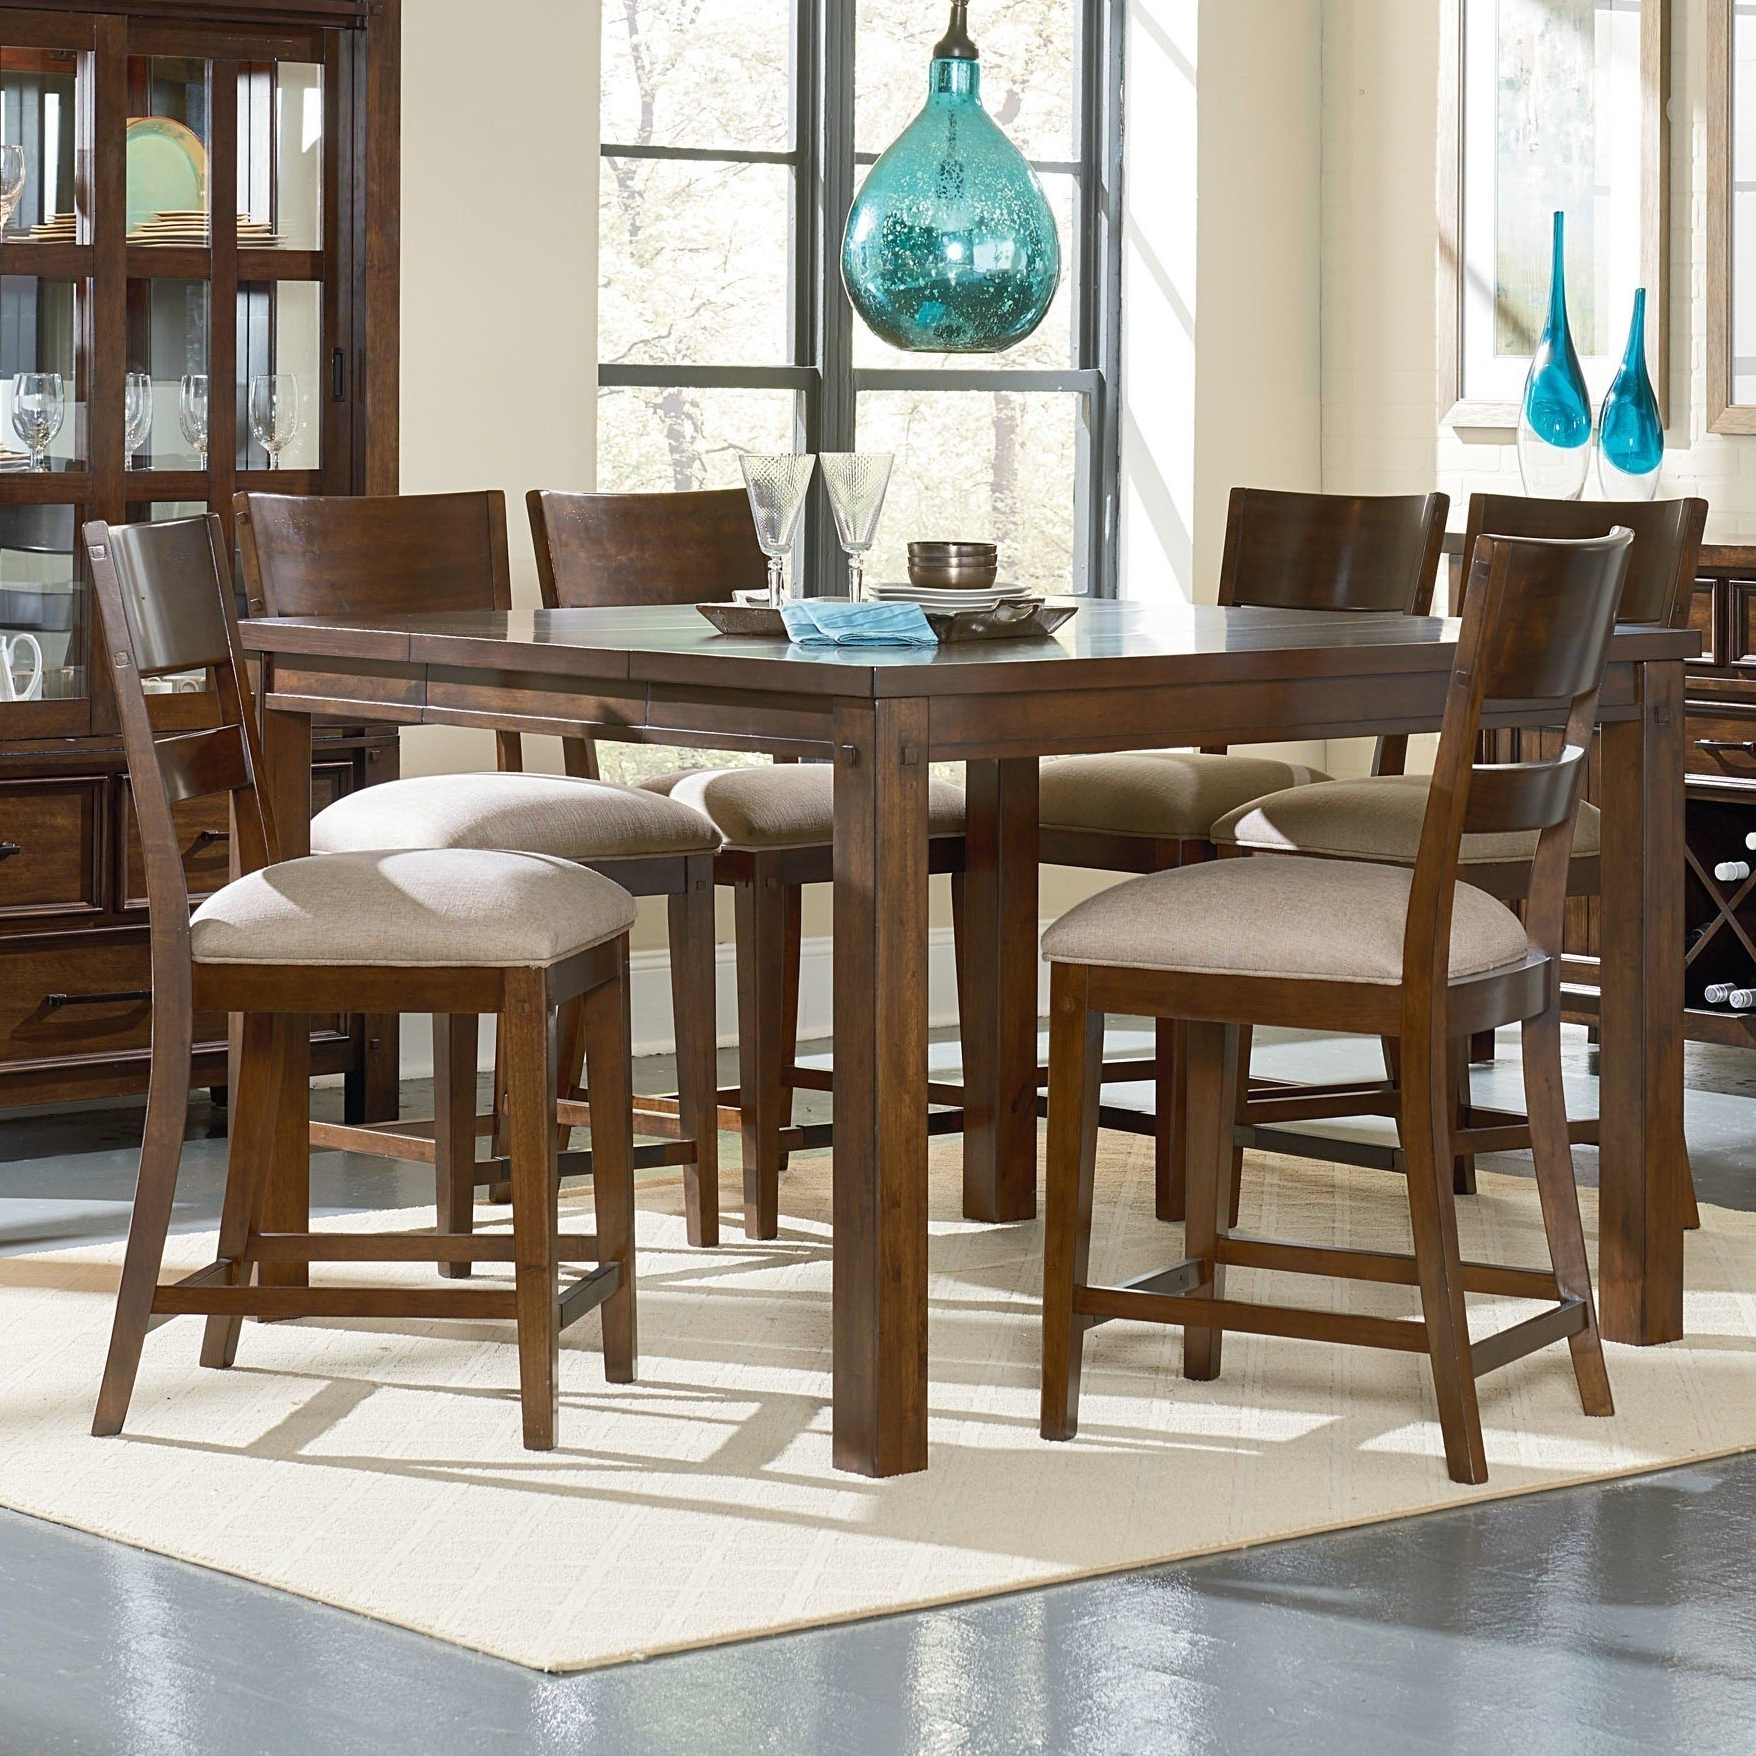 Most Up To Date Parquet 7 Piece Dining Sets Inside Square Dining Table For 6 – Visual Hunt (View 13 of 25)